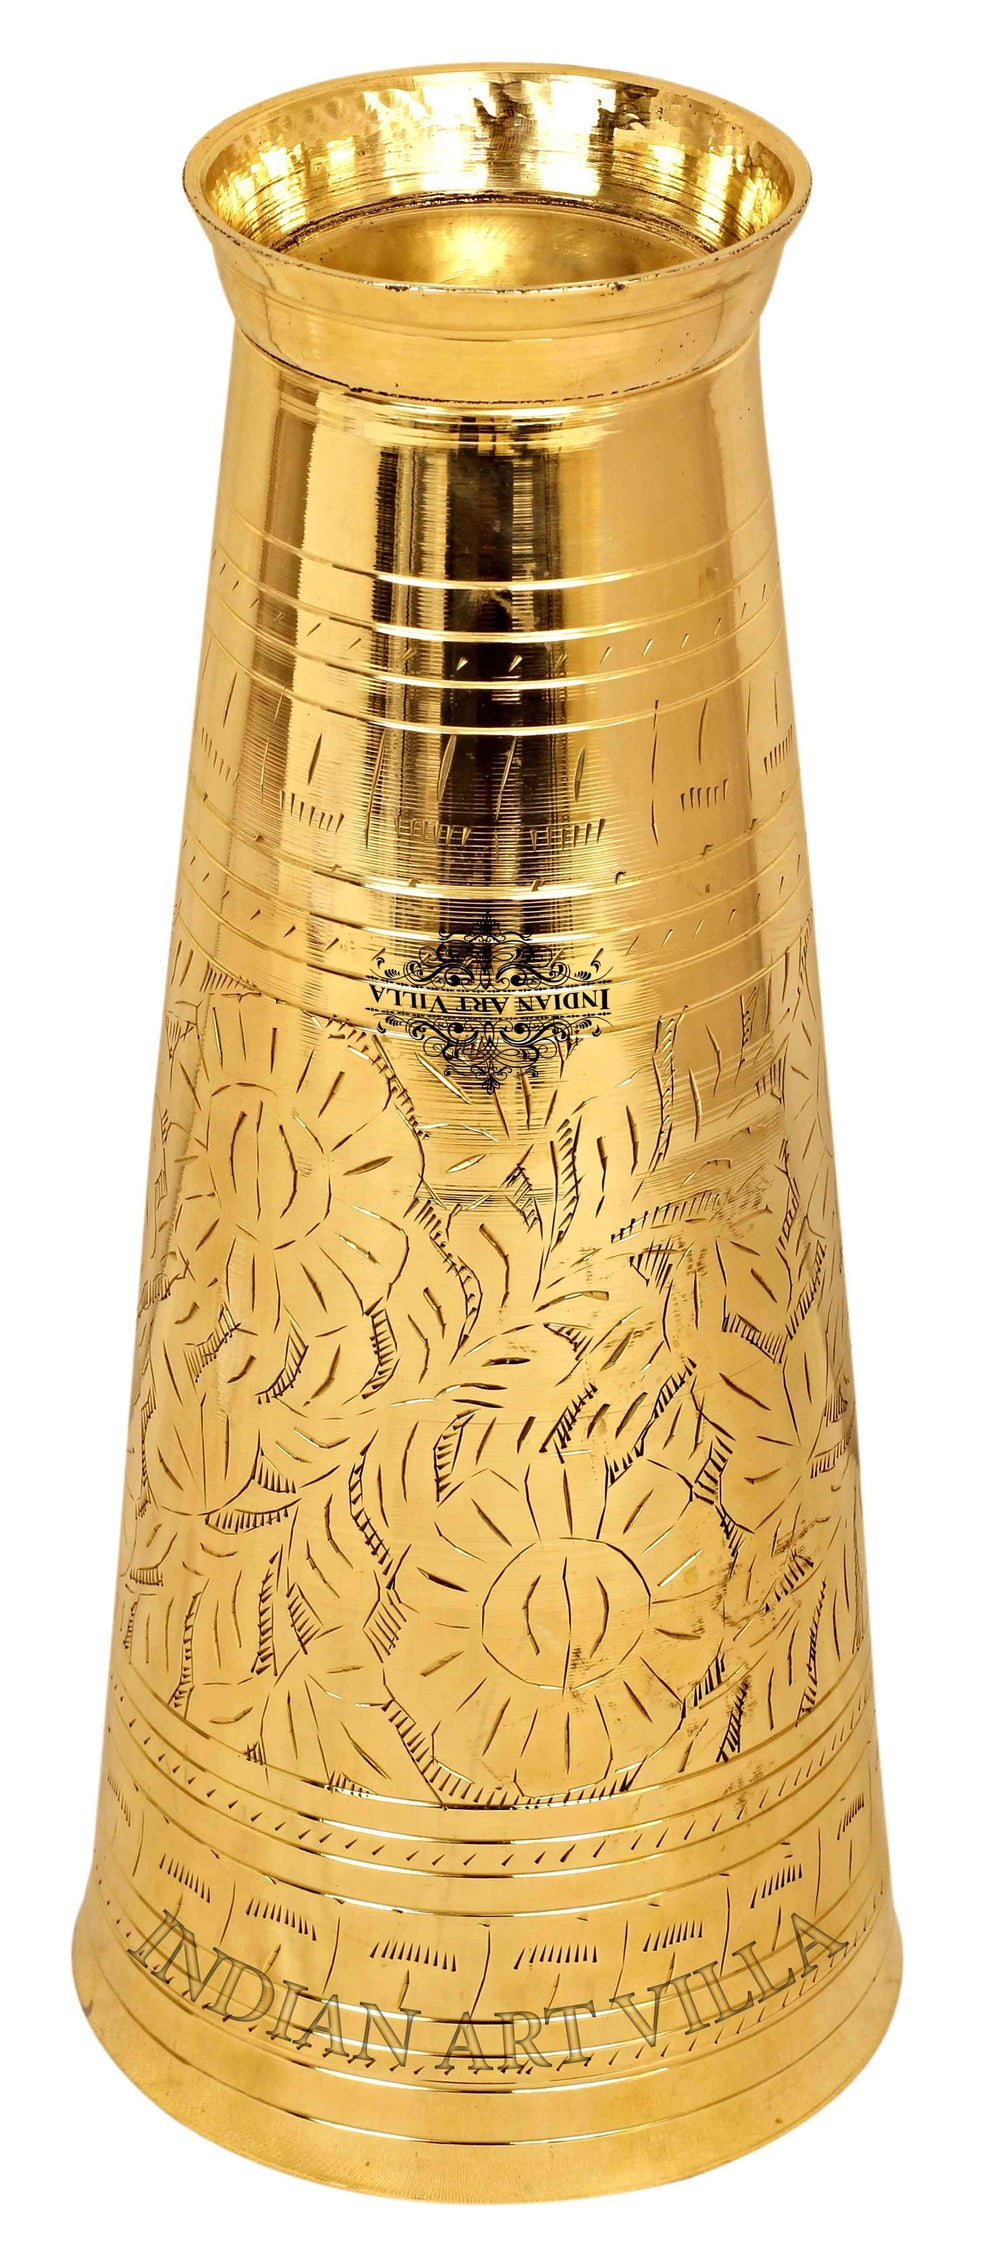 "Brass Embossed Flower Design Lassi Grass Tumbler, Height - 4.5'' Inch | 5"" Inch 